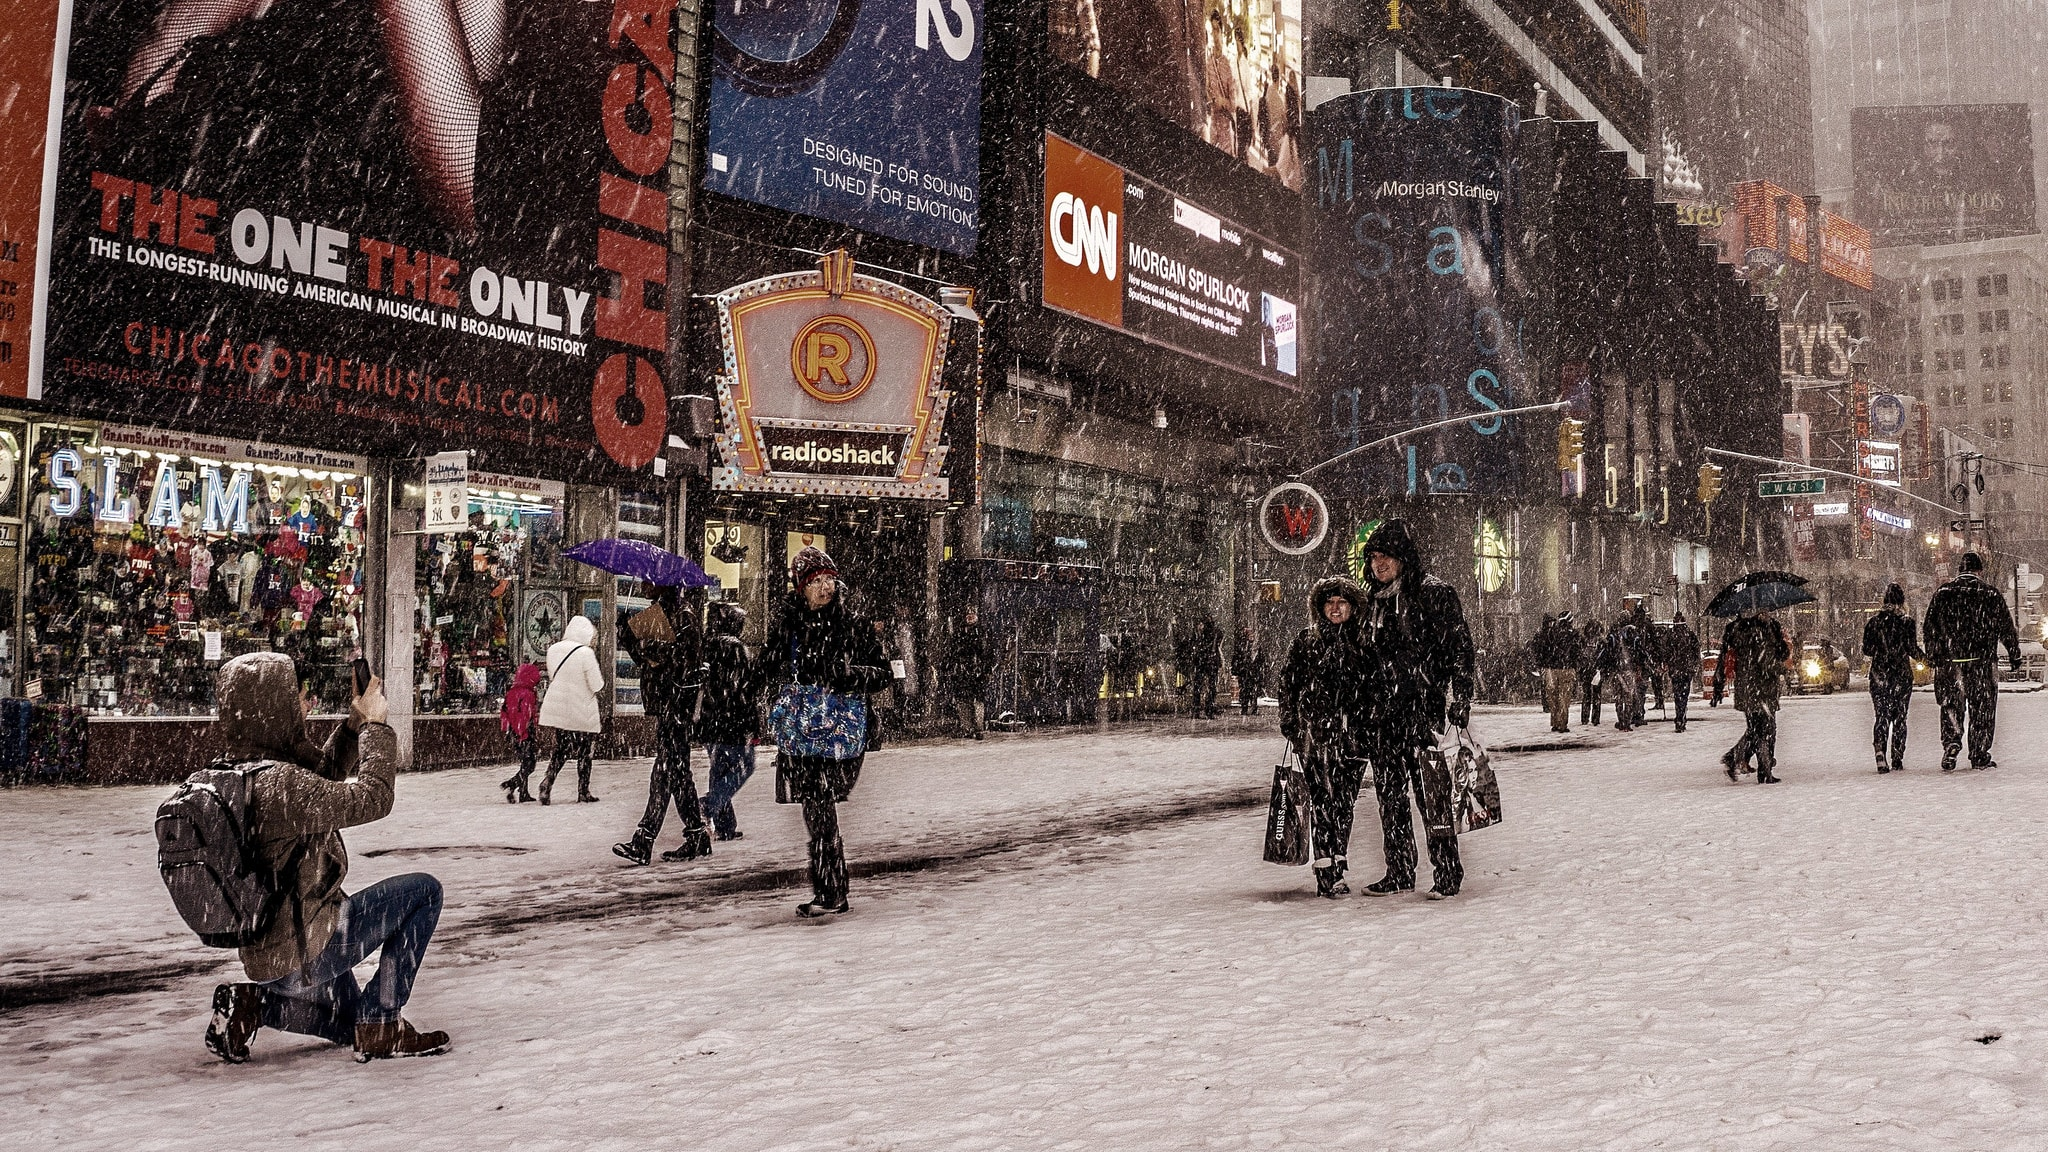 Wintertime tourists | Jeff Turner Flickr